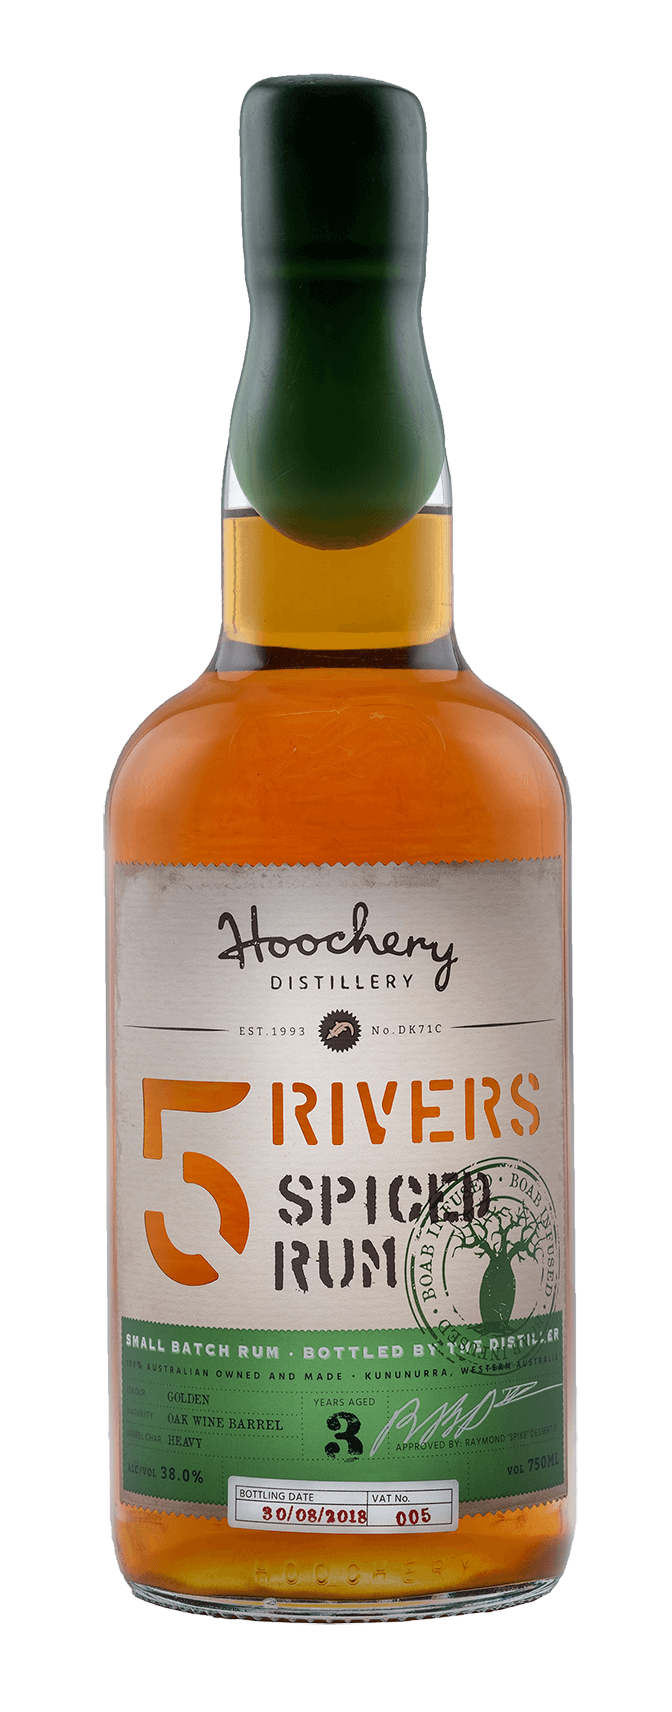 5 Rivers Tropical Spiced Rum